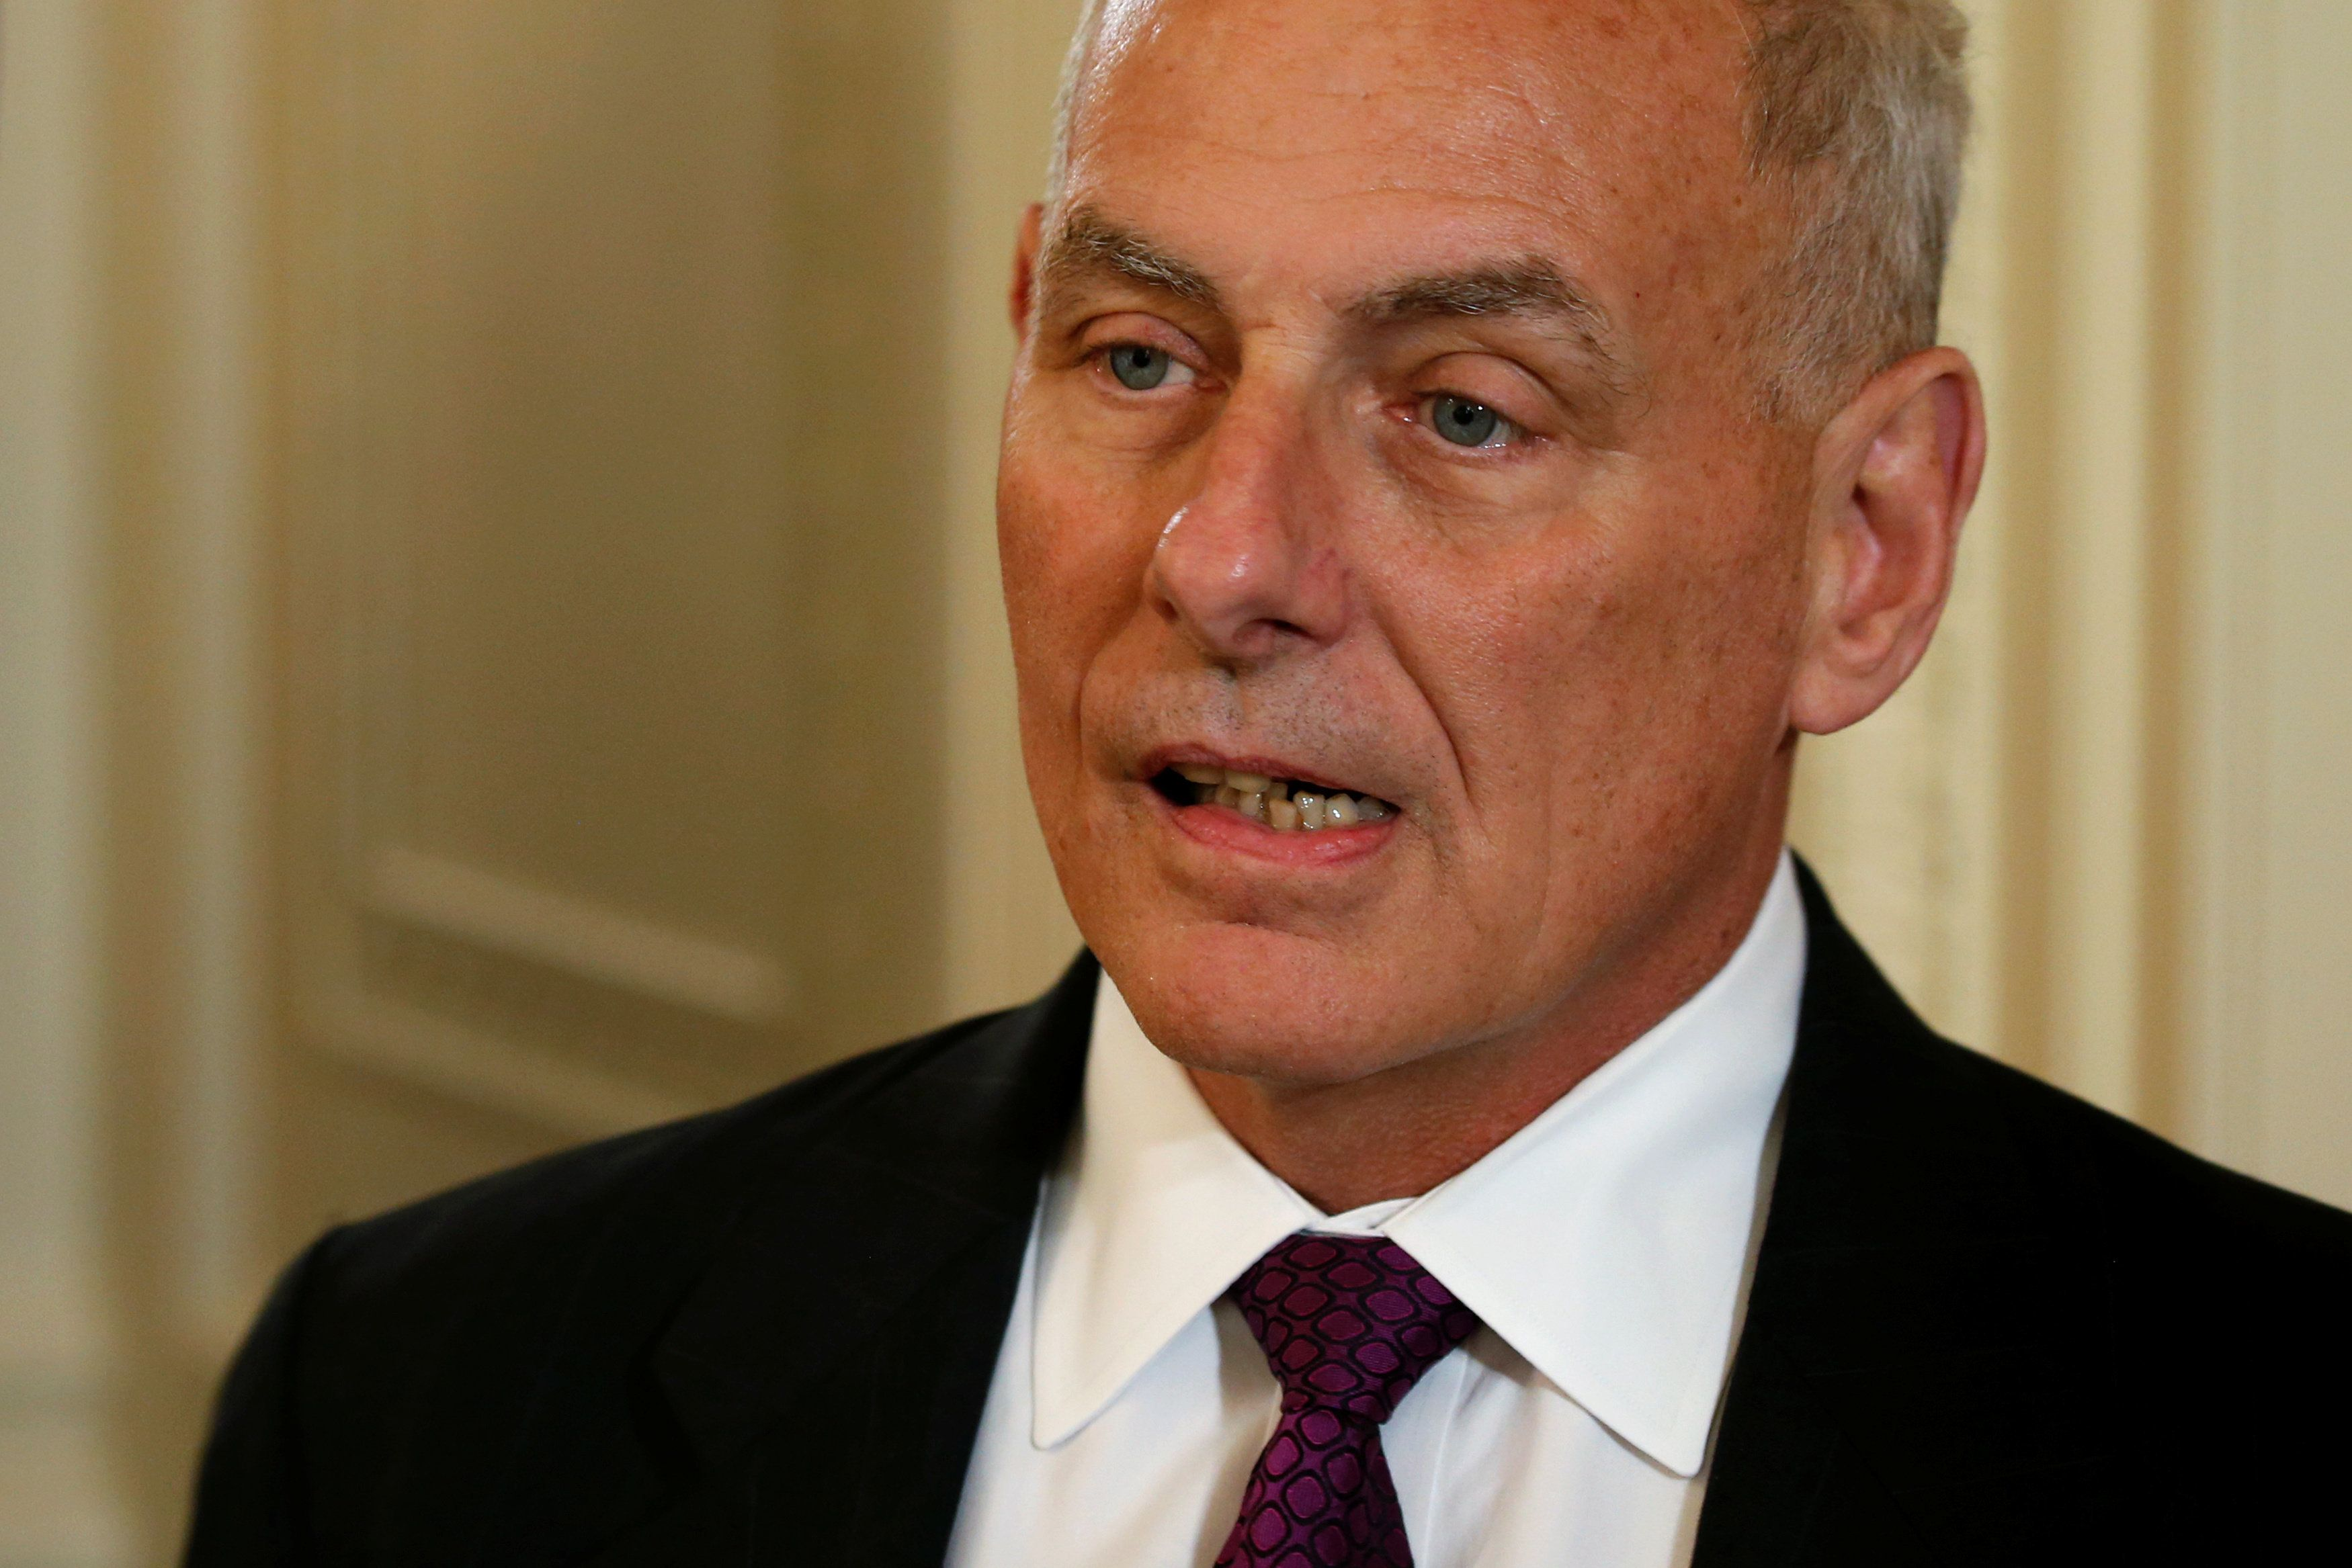 White House chief of staff John Kelly expected to resign within days